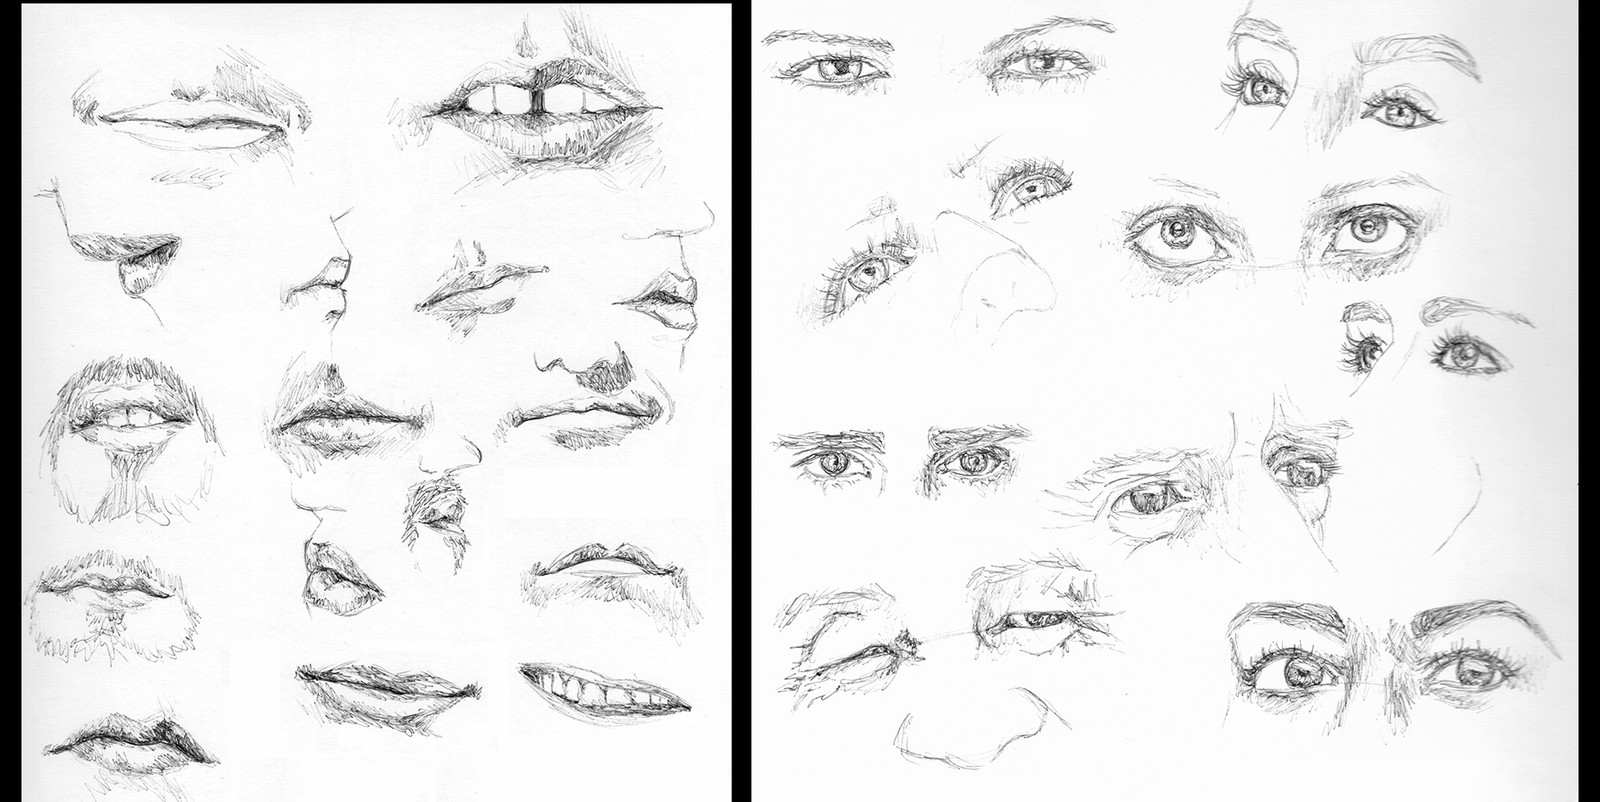 Anatomy practice - Mouths and Eyes